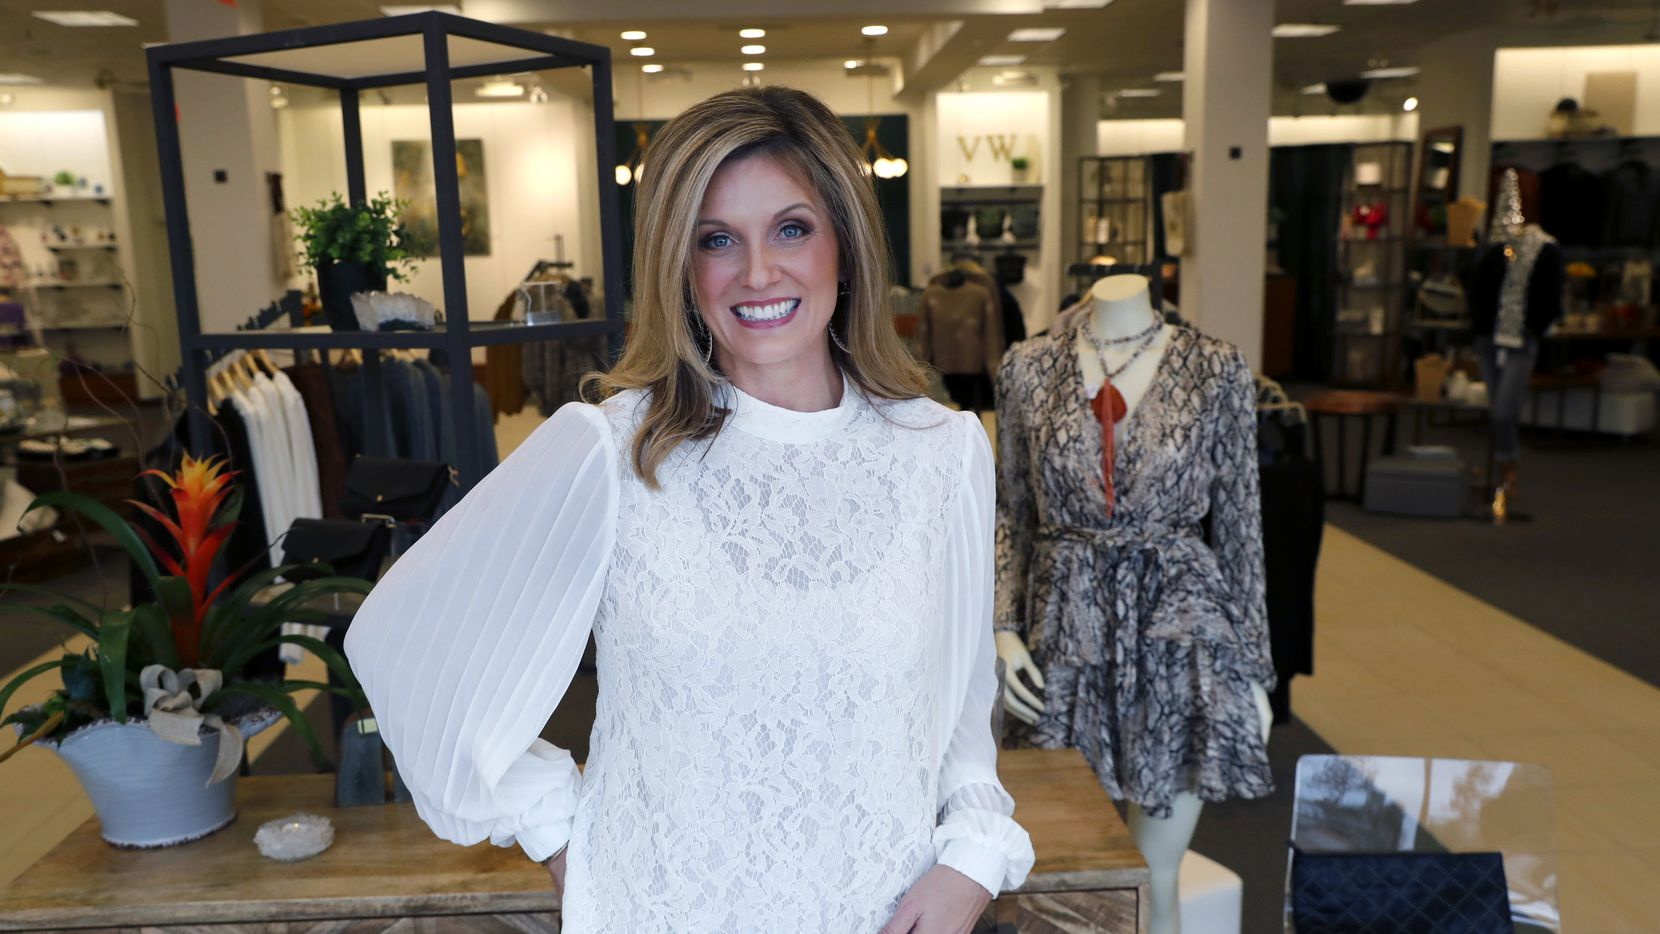 In Nov. 26 photo, Amy Witt, owner of the Velvet Window, posses for a photo at her retail store in Dallas. Heading into the holiday shopping season, Witt opened a physical store to attract more shoppers than just those who have been her online customers.